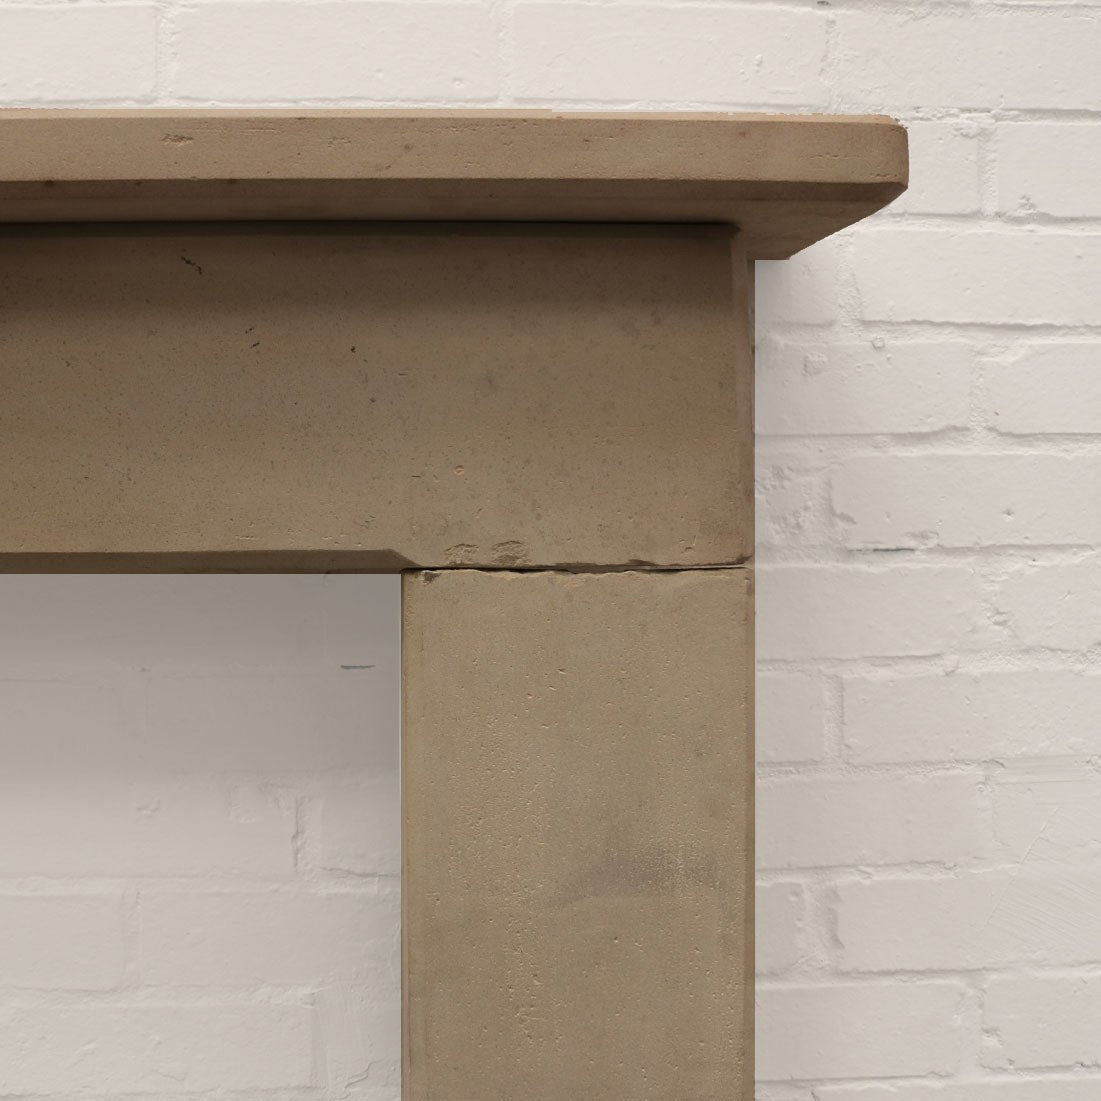 Antique Late 18th Century Limestone Fireplace Surround